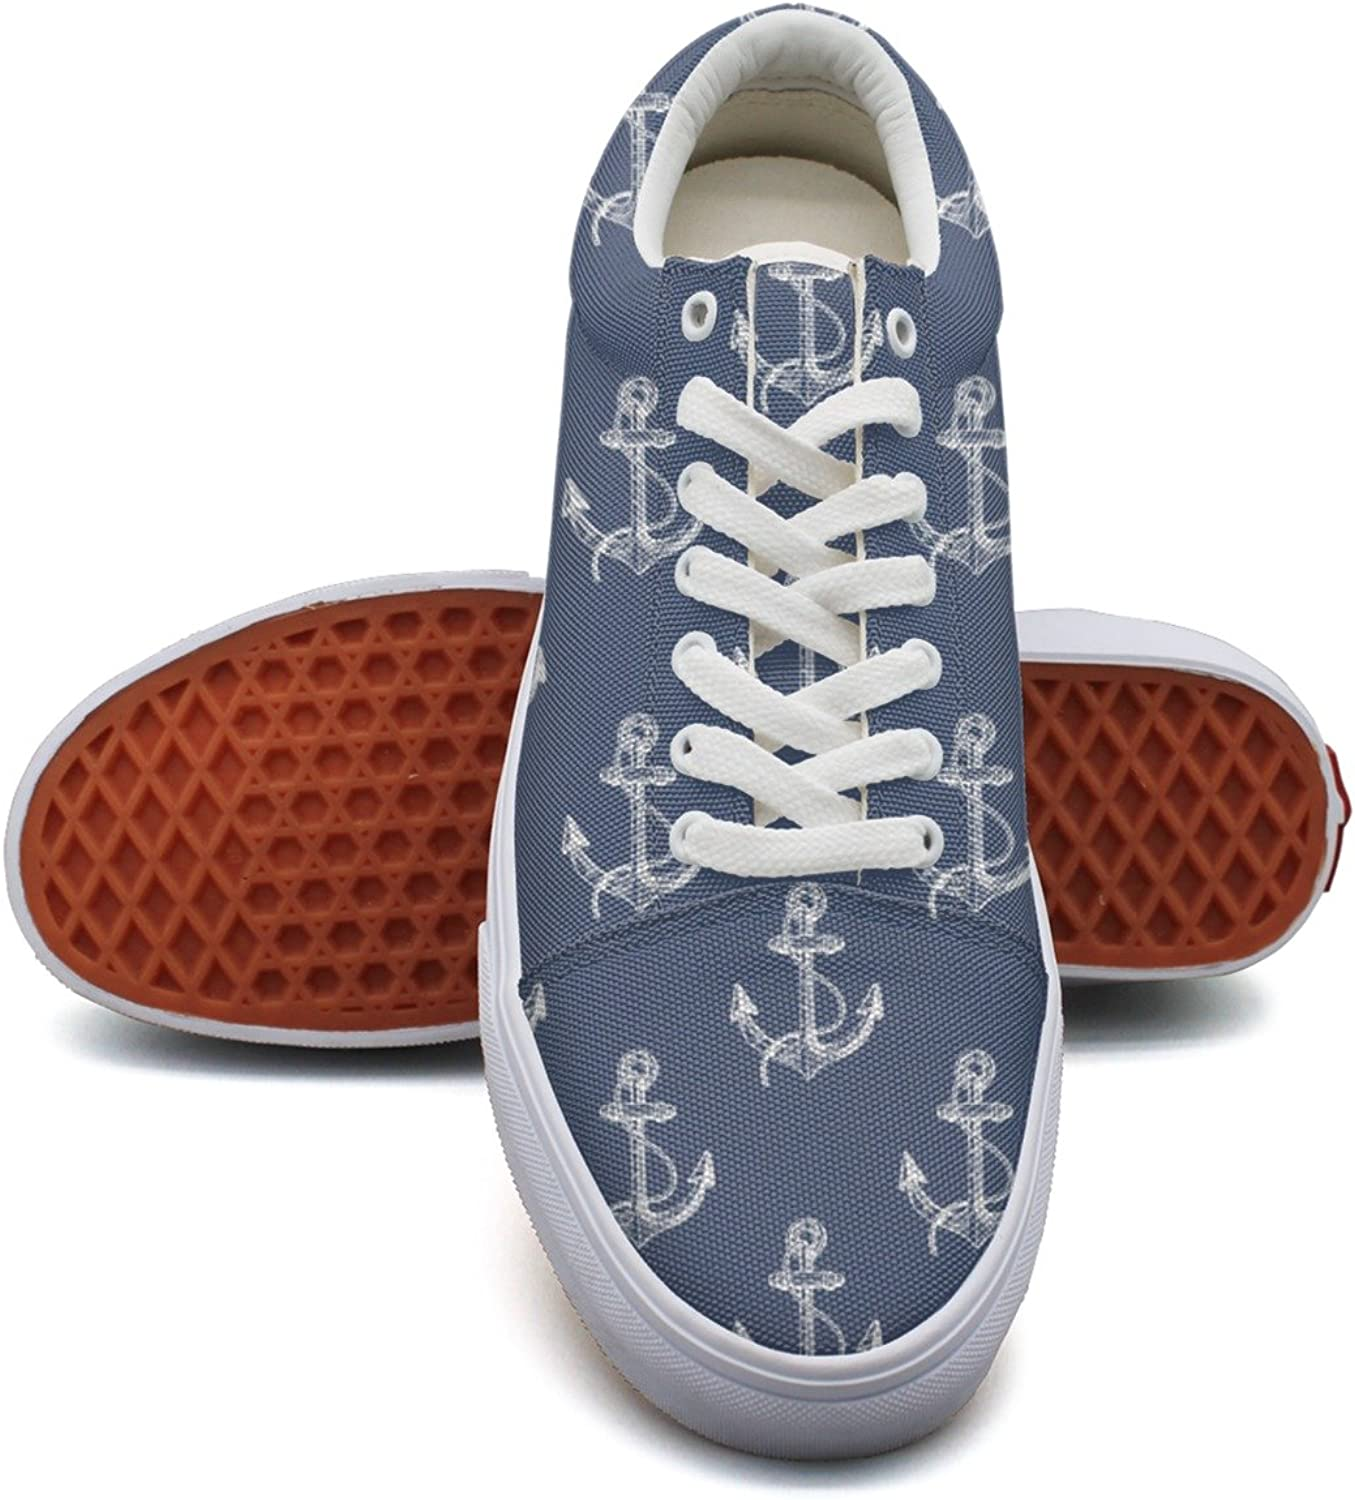 Feenfling Hand Drawn Big Boat Anchor bluee Womens Casual Canvas Running shoes Low Top Hip Hop Volleyball Sneakers for Women's